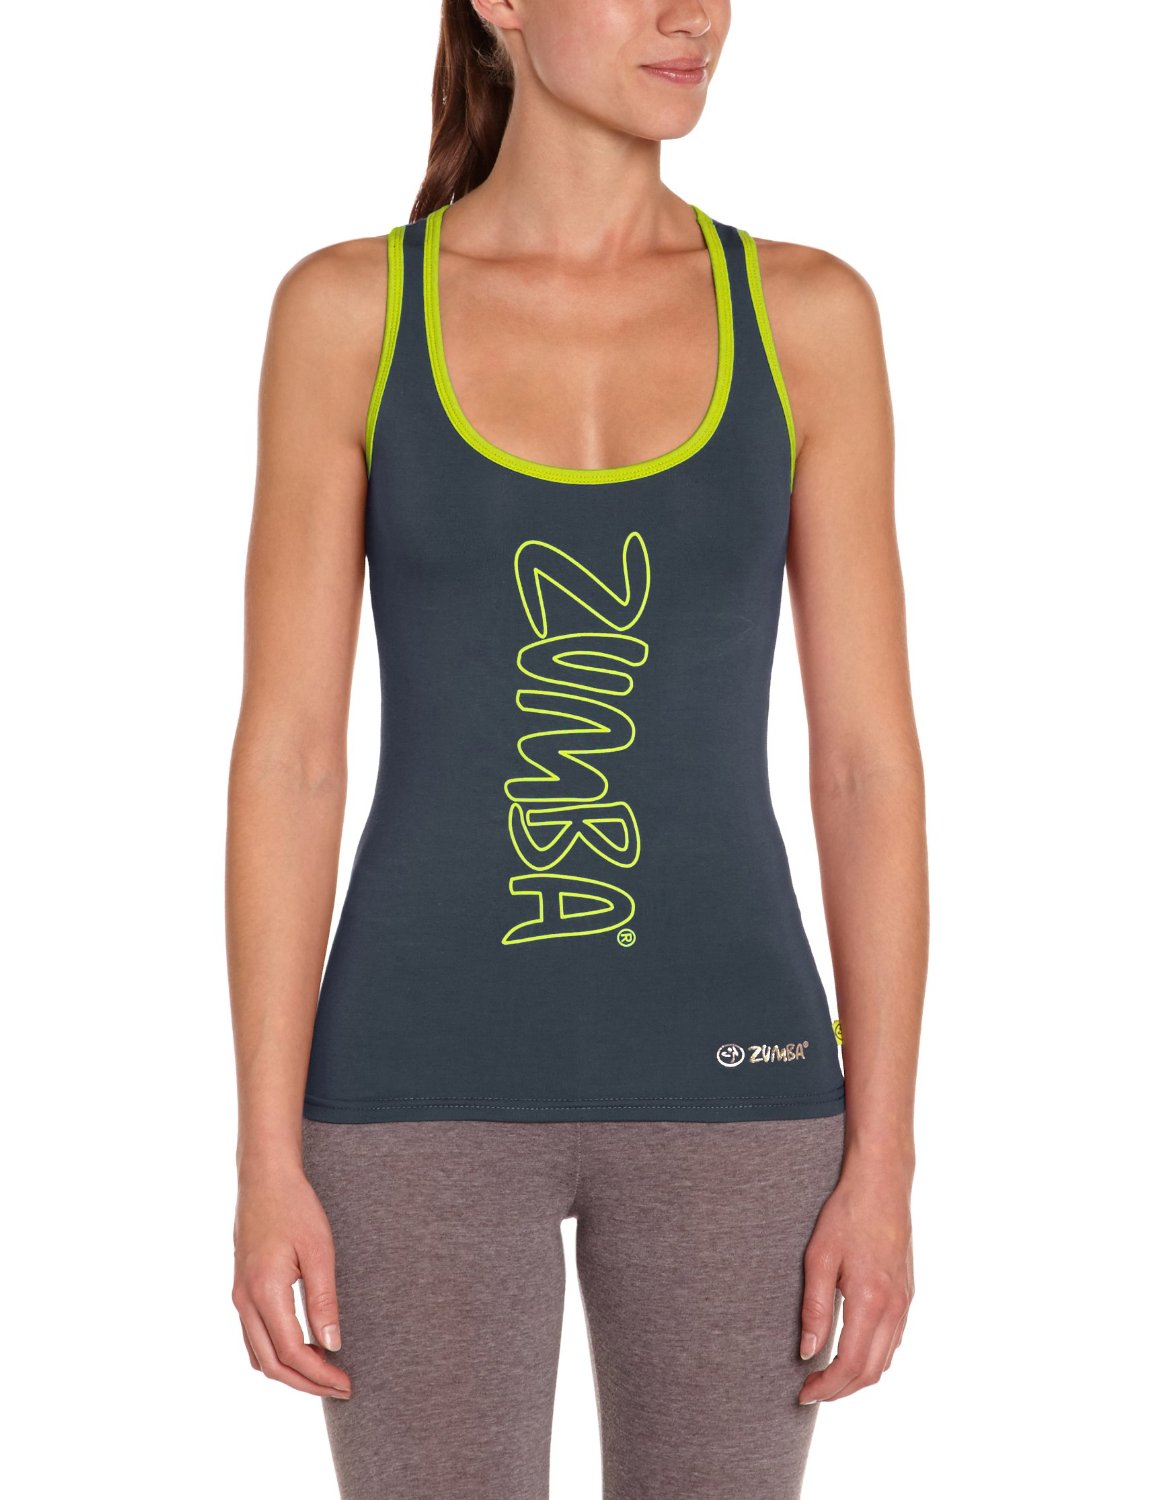 Rock with Me Racerback Top